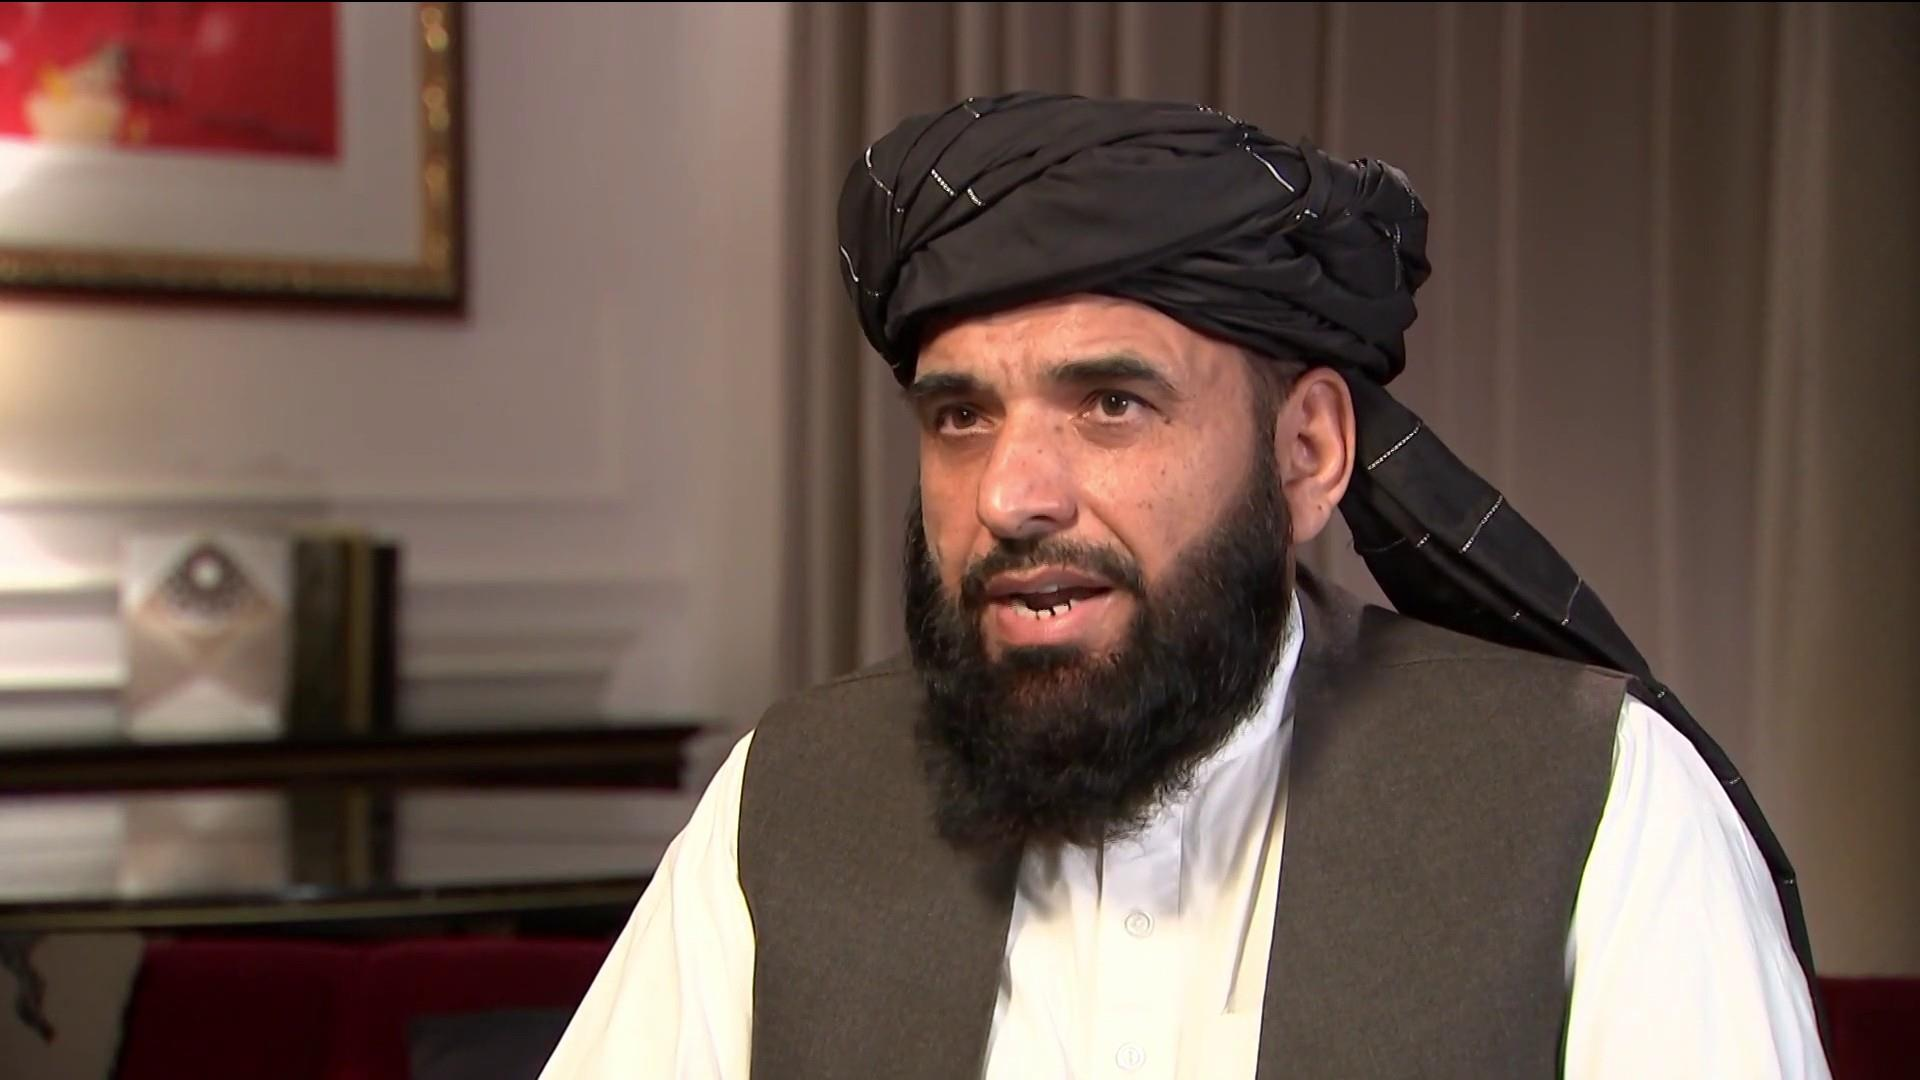 The U.S. is eager to end its longest war. In interview, Taliban gives little sign it's ready to change.